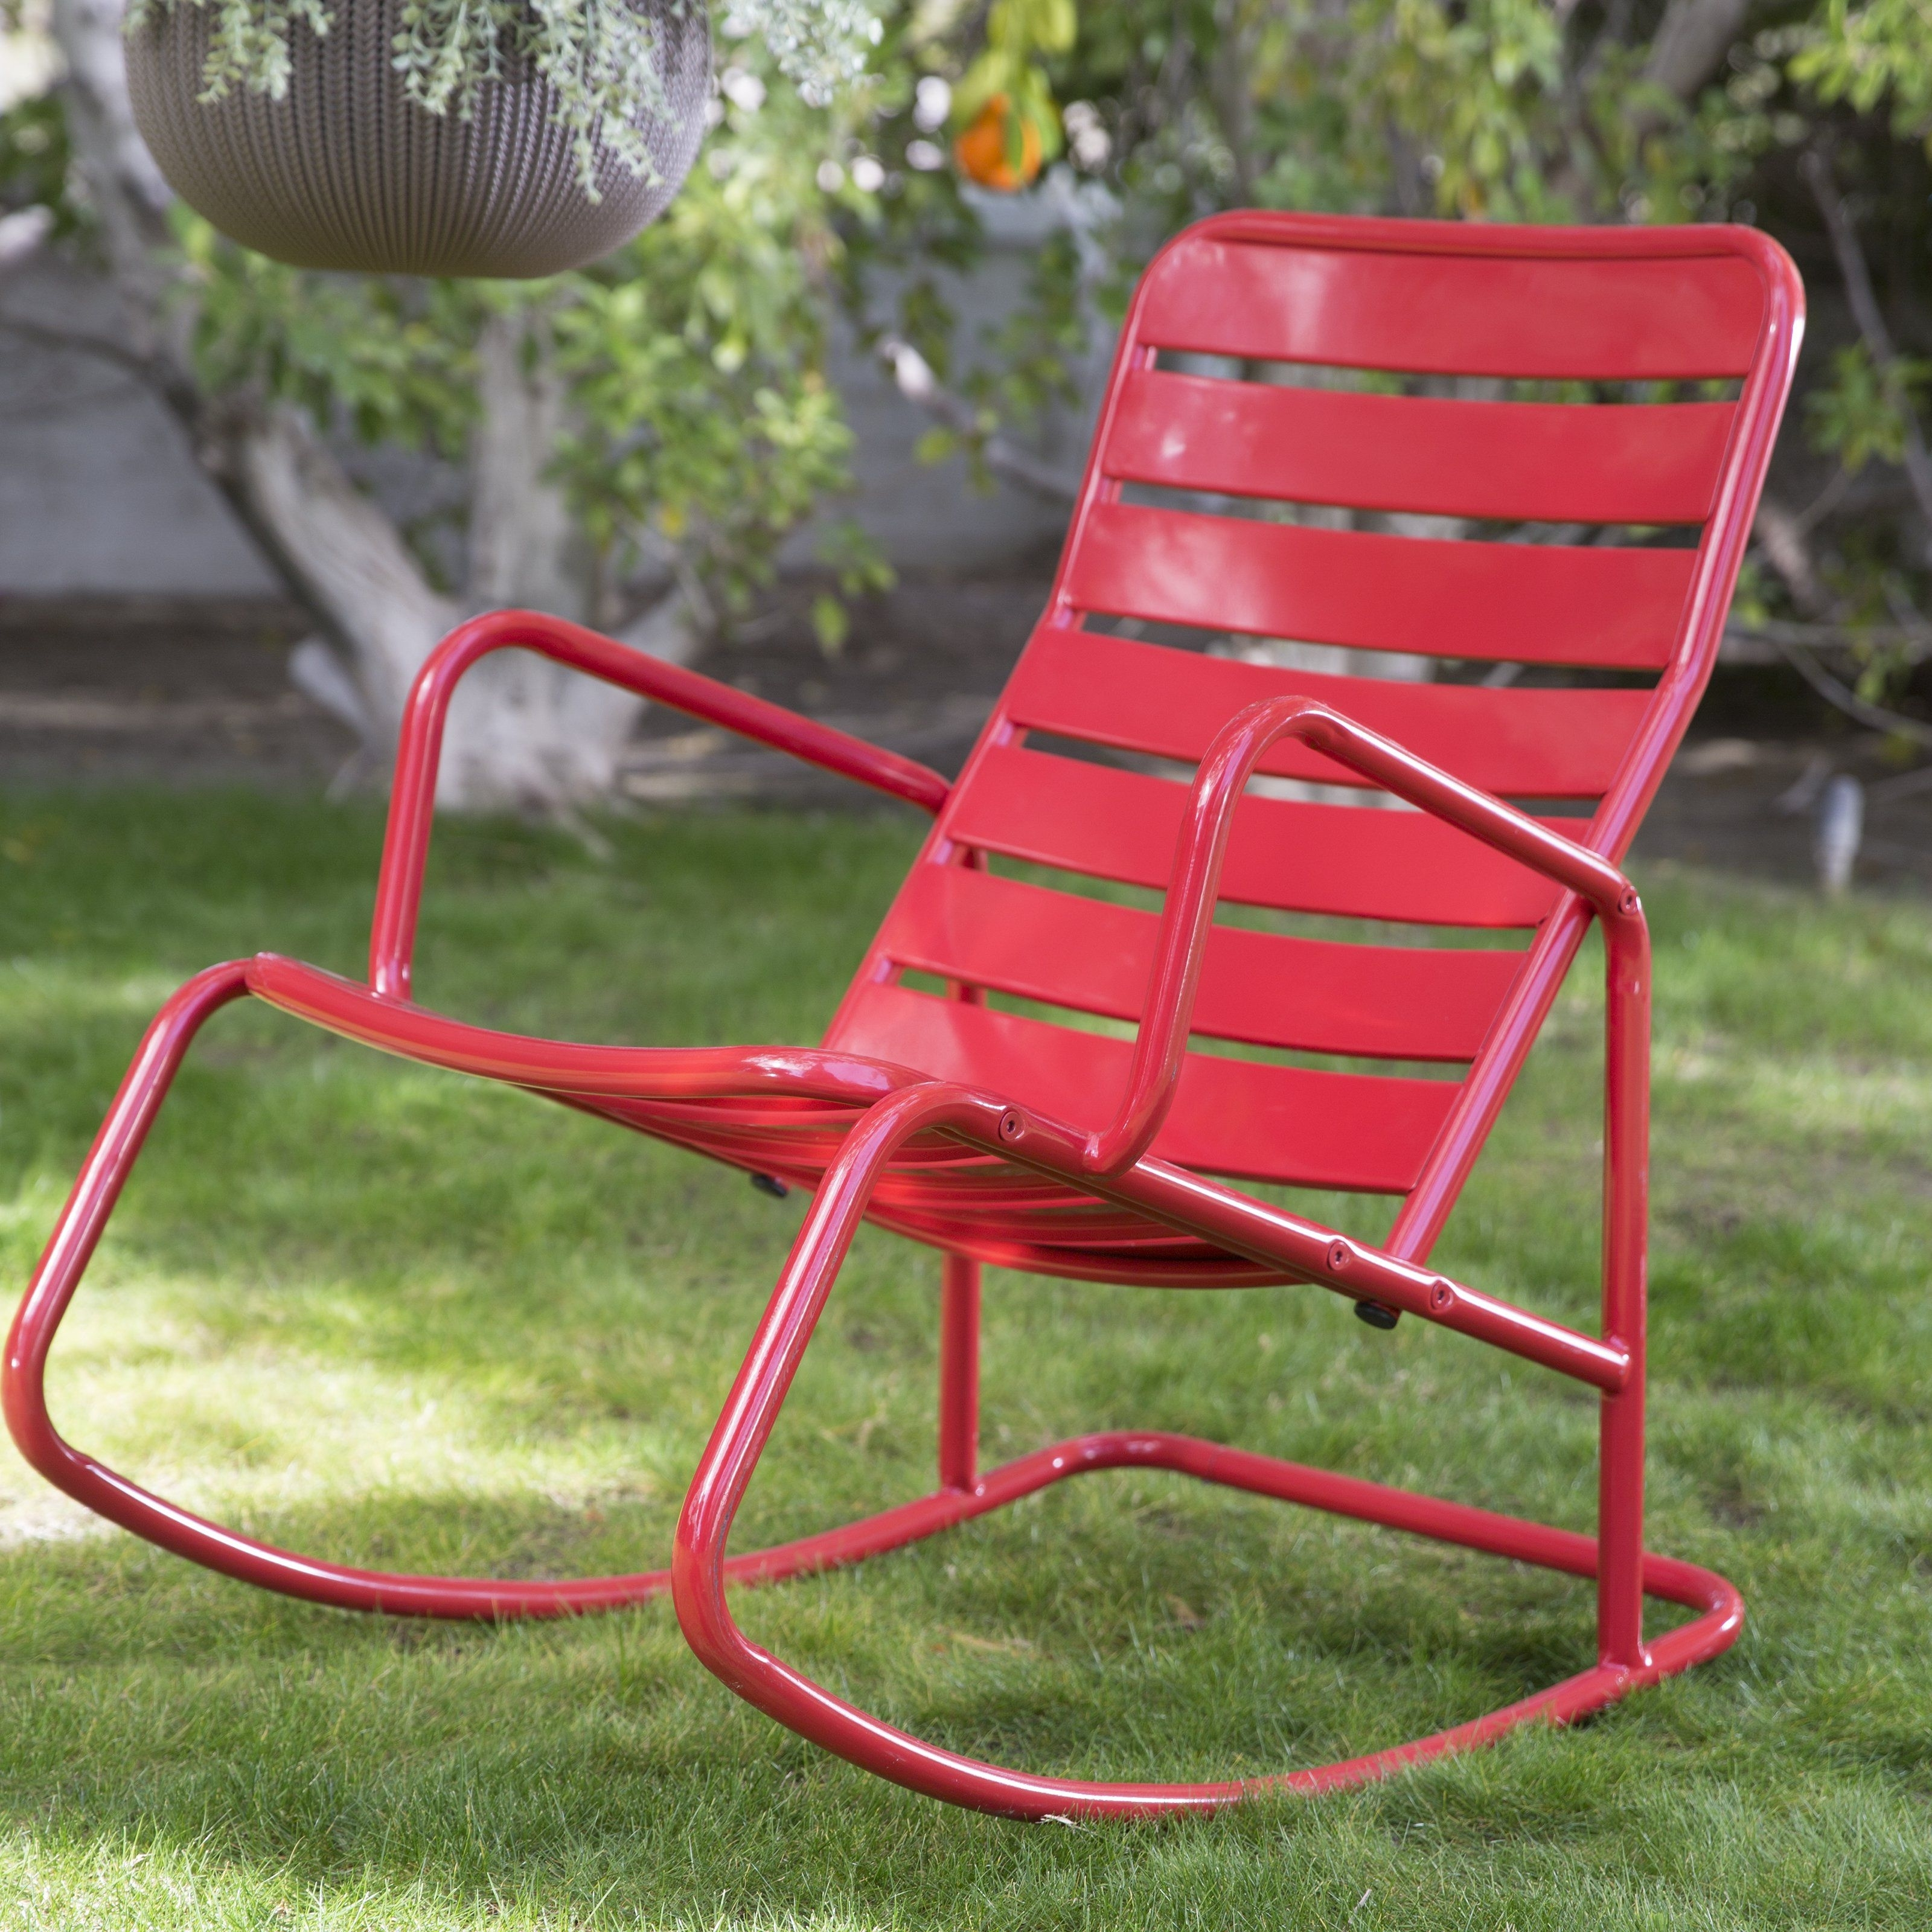 Most Recent Patio Metal Rocking Chairs Throughout Belham Living Adley Outdoor Metal Slat Rocking Chair – Contemporary (View 10 of 20)